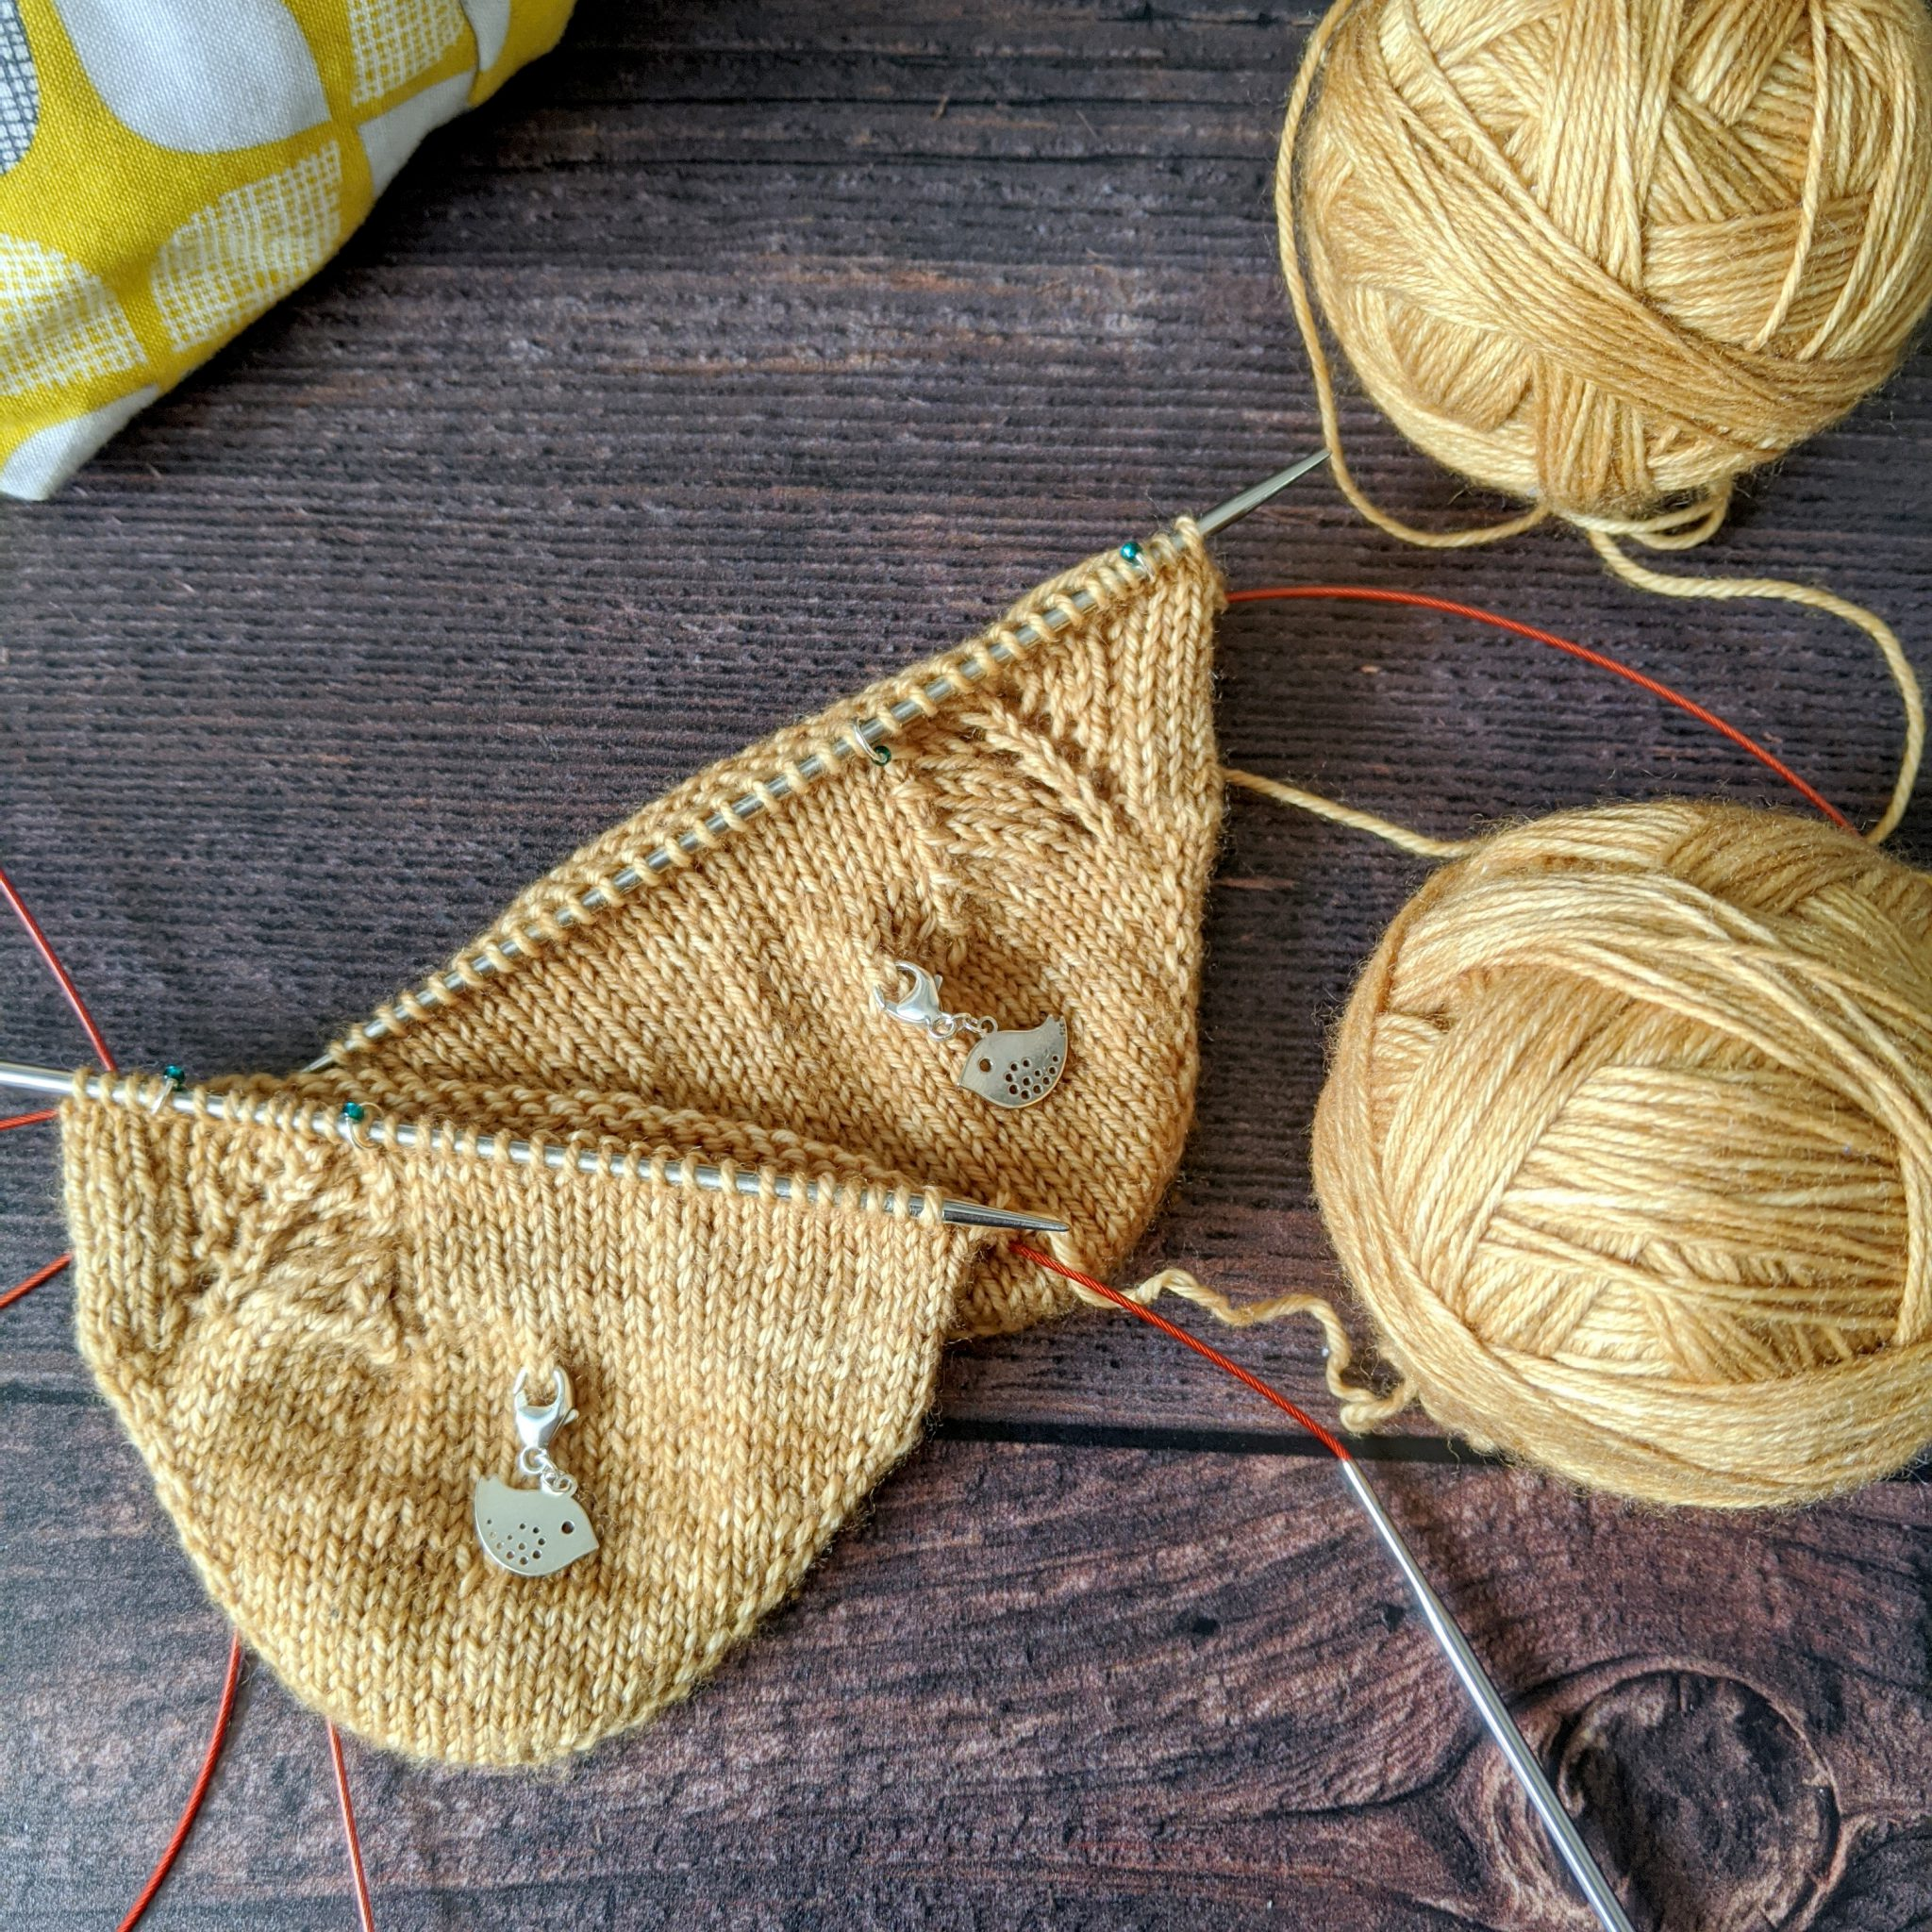 The toes of two socks in progress, they have a lace pattern and visible vertical line of decreases